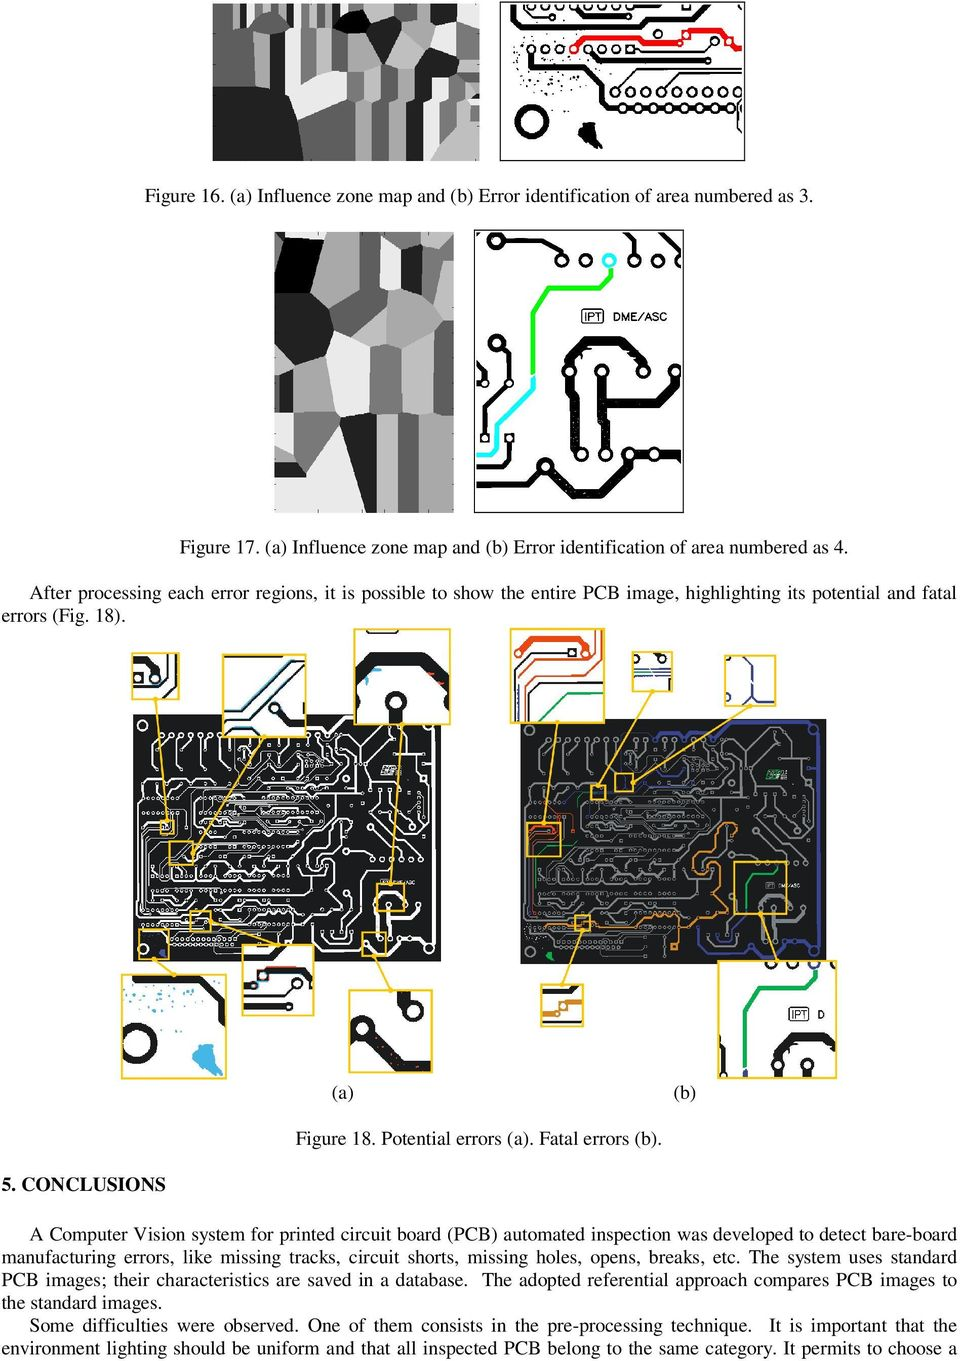 CONCLUSIONS A Computer Vision system for printed circuit board (PCB) automated inspection was developed to detect bare-board manufacturing errors, like missing tracks, circuit shorts, missing holes,